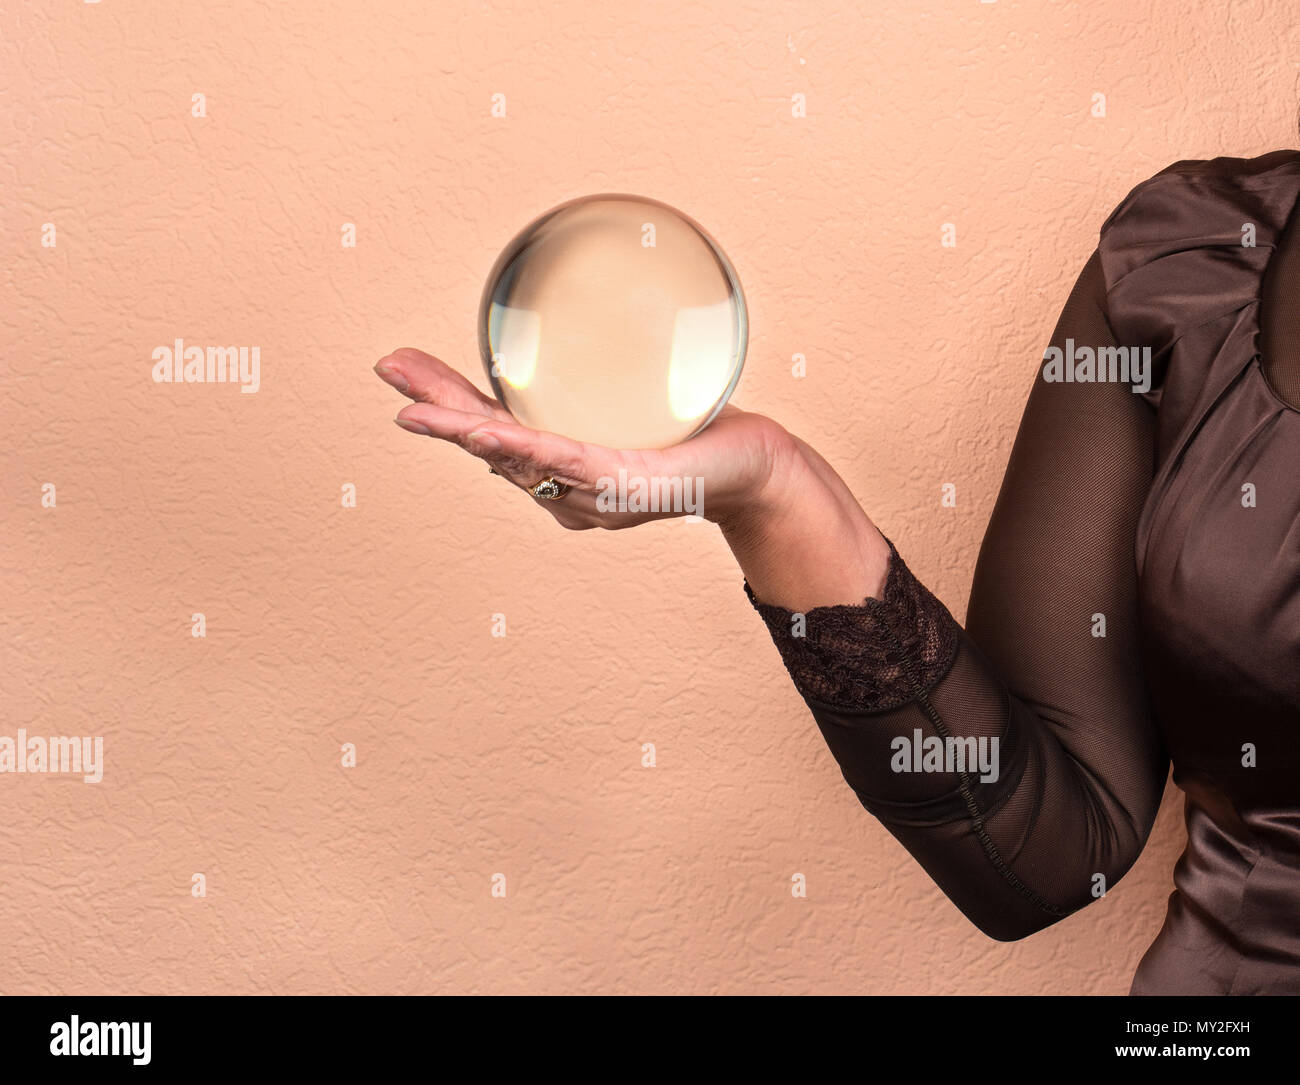 Female fortune teller holding a magic ball Stock Photo